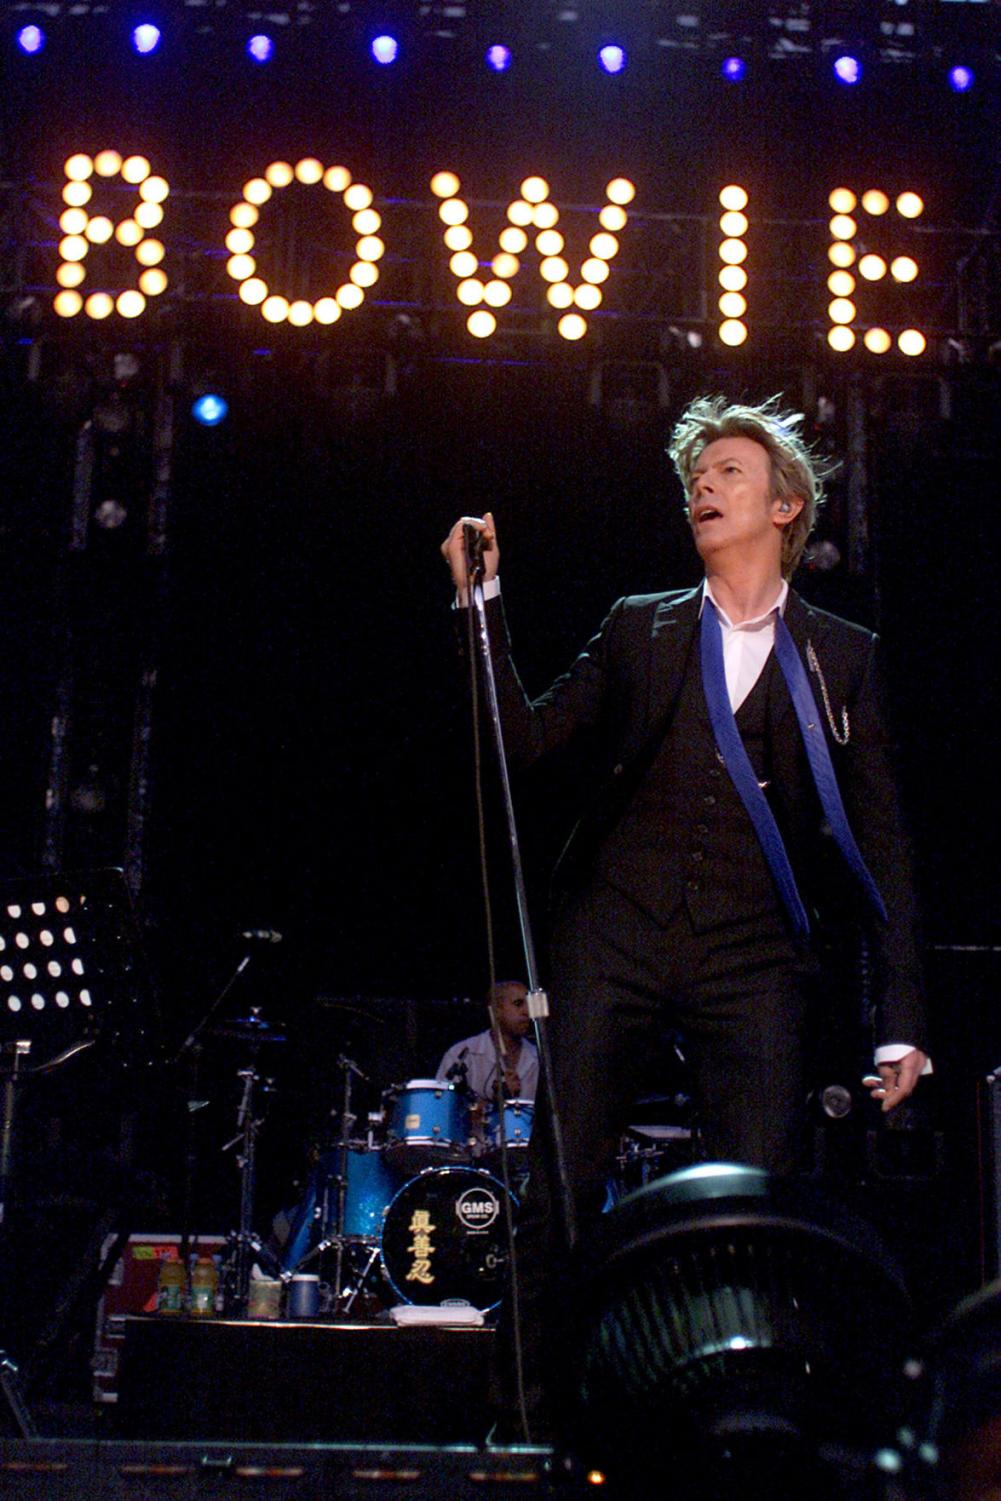 David Bowie performs at the Area2 Festival at the Verizon Wireless Amphitheater on Aug. 13, 2002 in Irvine, Cailf. Bowie died Sunday after an 18-month battle with cancer. (Robert Lachman/Los Angeles Times/TNS)